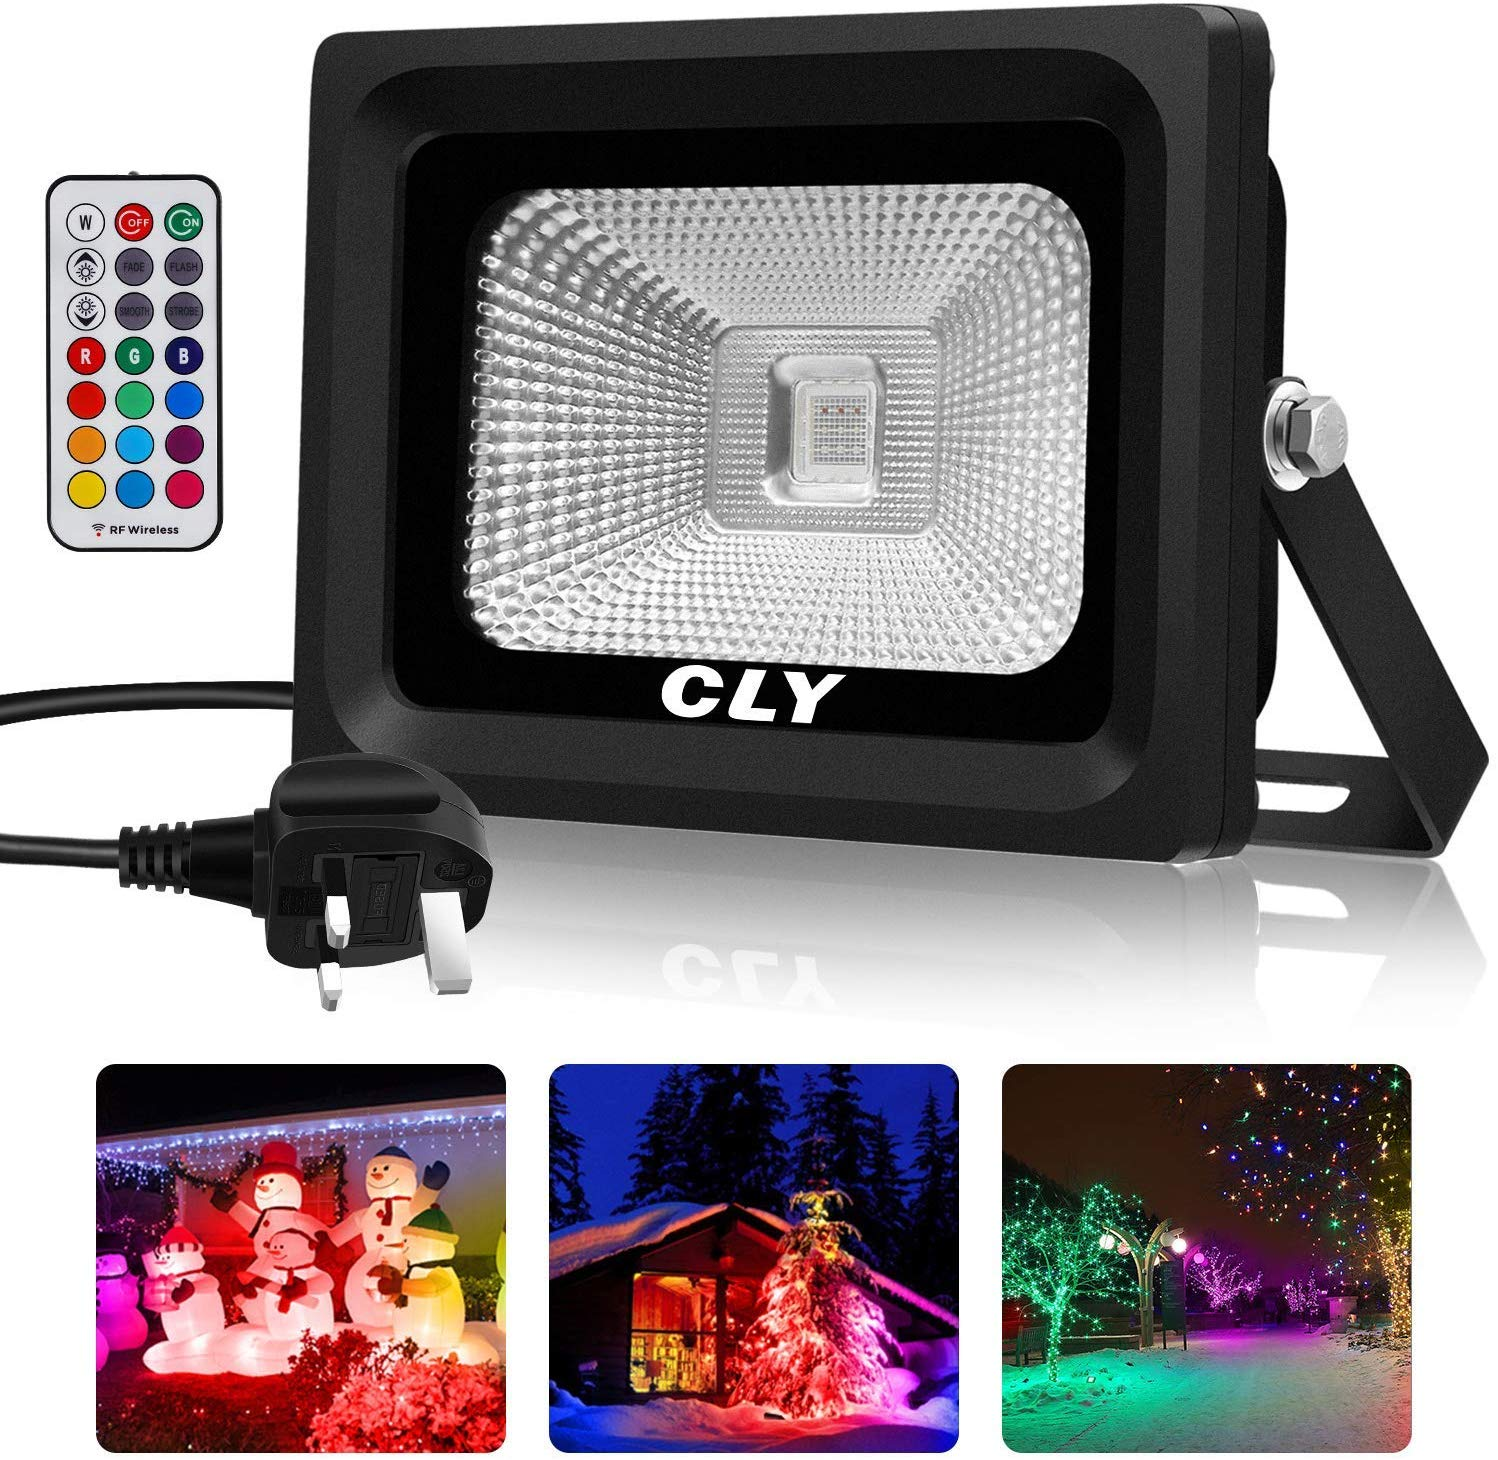 CLY RGB Flood Light with Remote Control, 4 Modes 16 Colours Spotlights IP66 Waterproof Pond Lights,10W